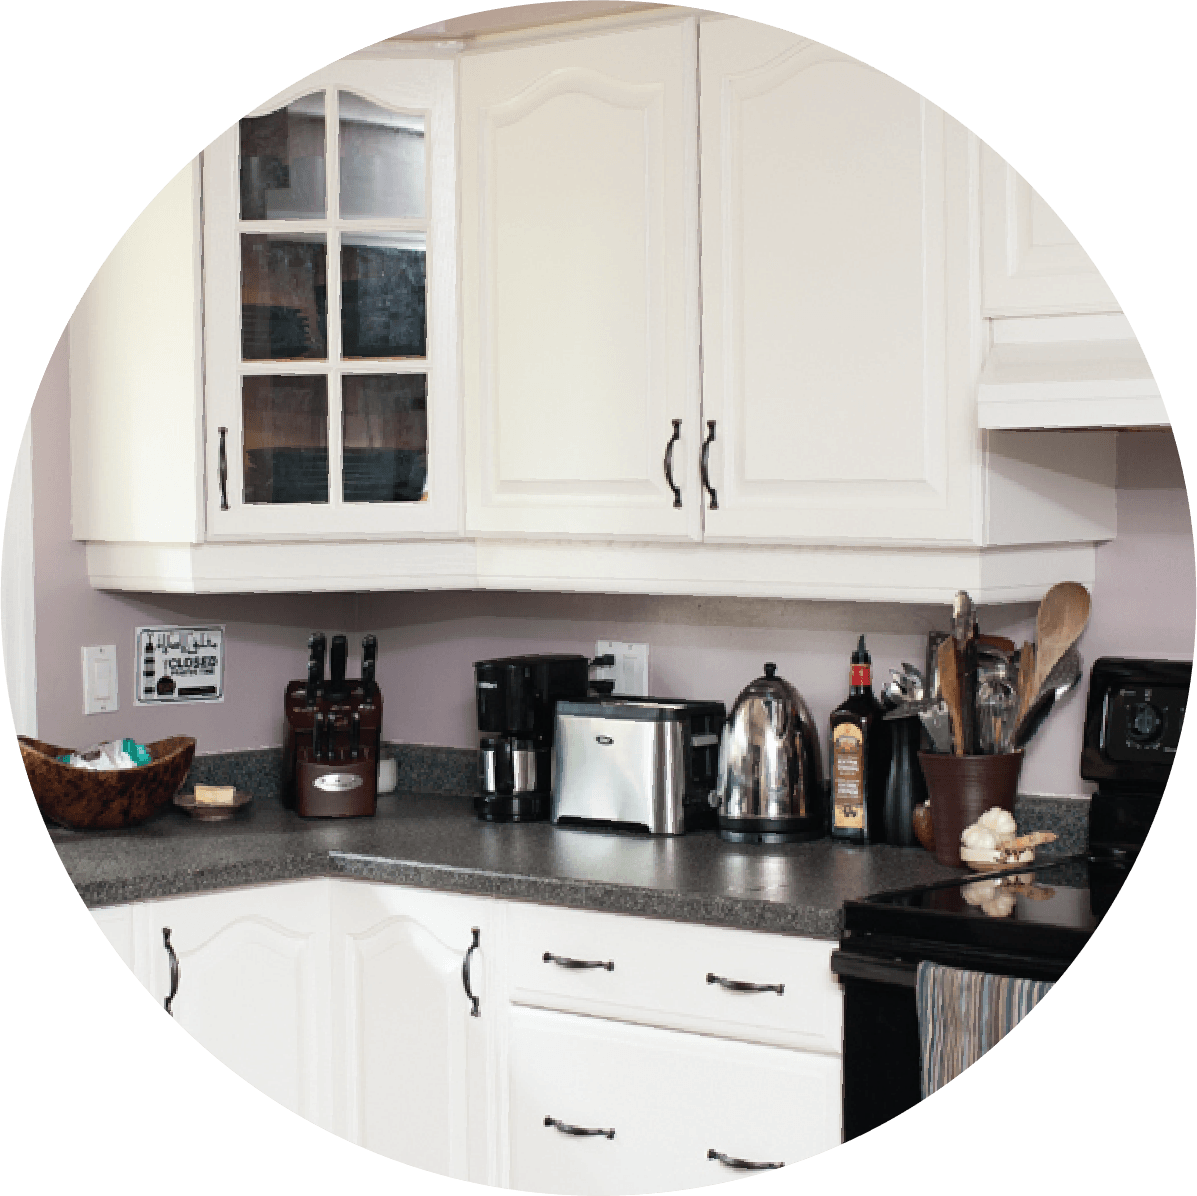 Kitchen Countertop Resurfacing Can Transform Any Tired Old Into A Granite Effect Work Surface That S Easy To Clean And Lasts For Years